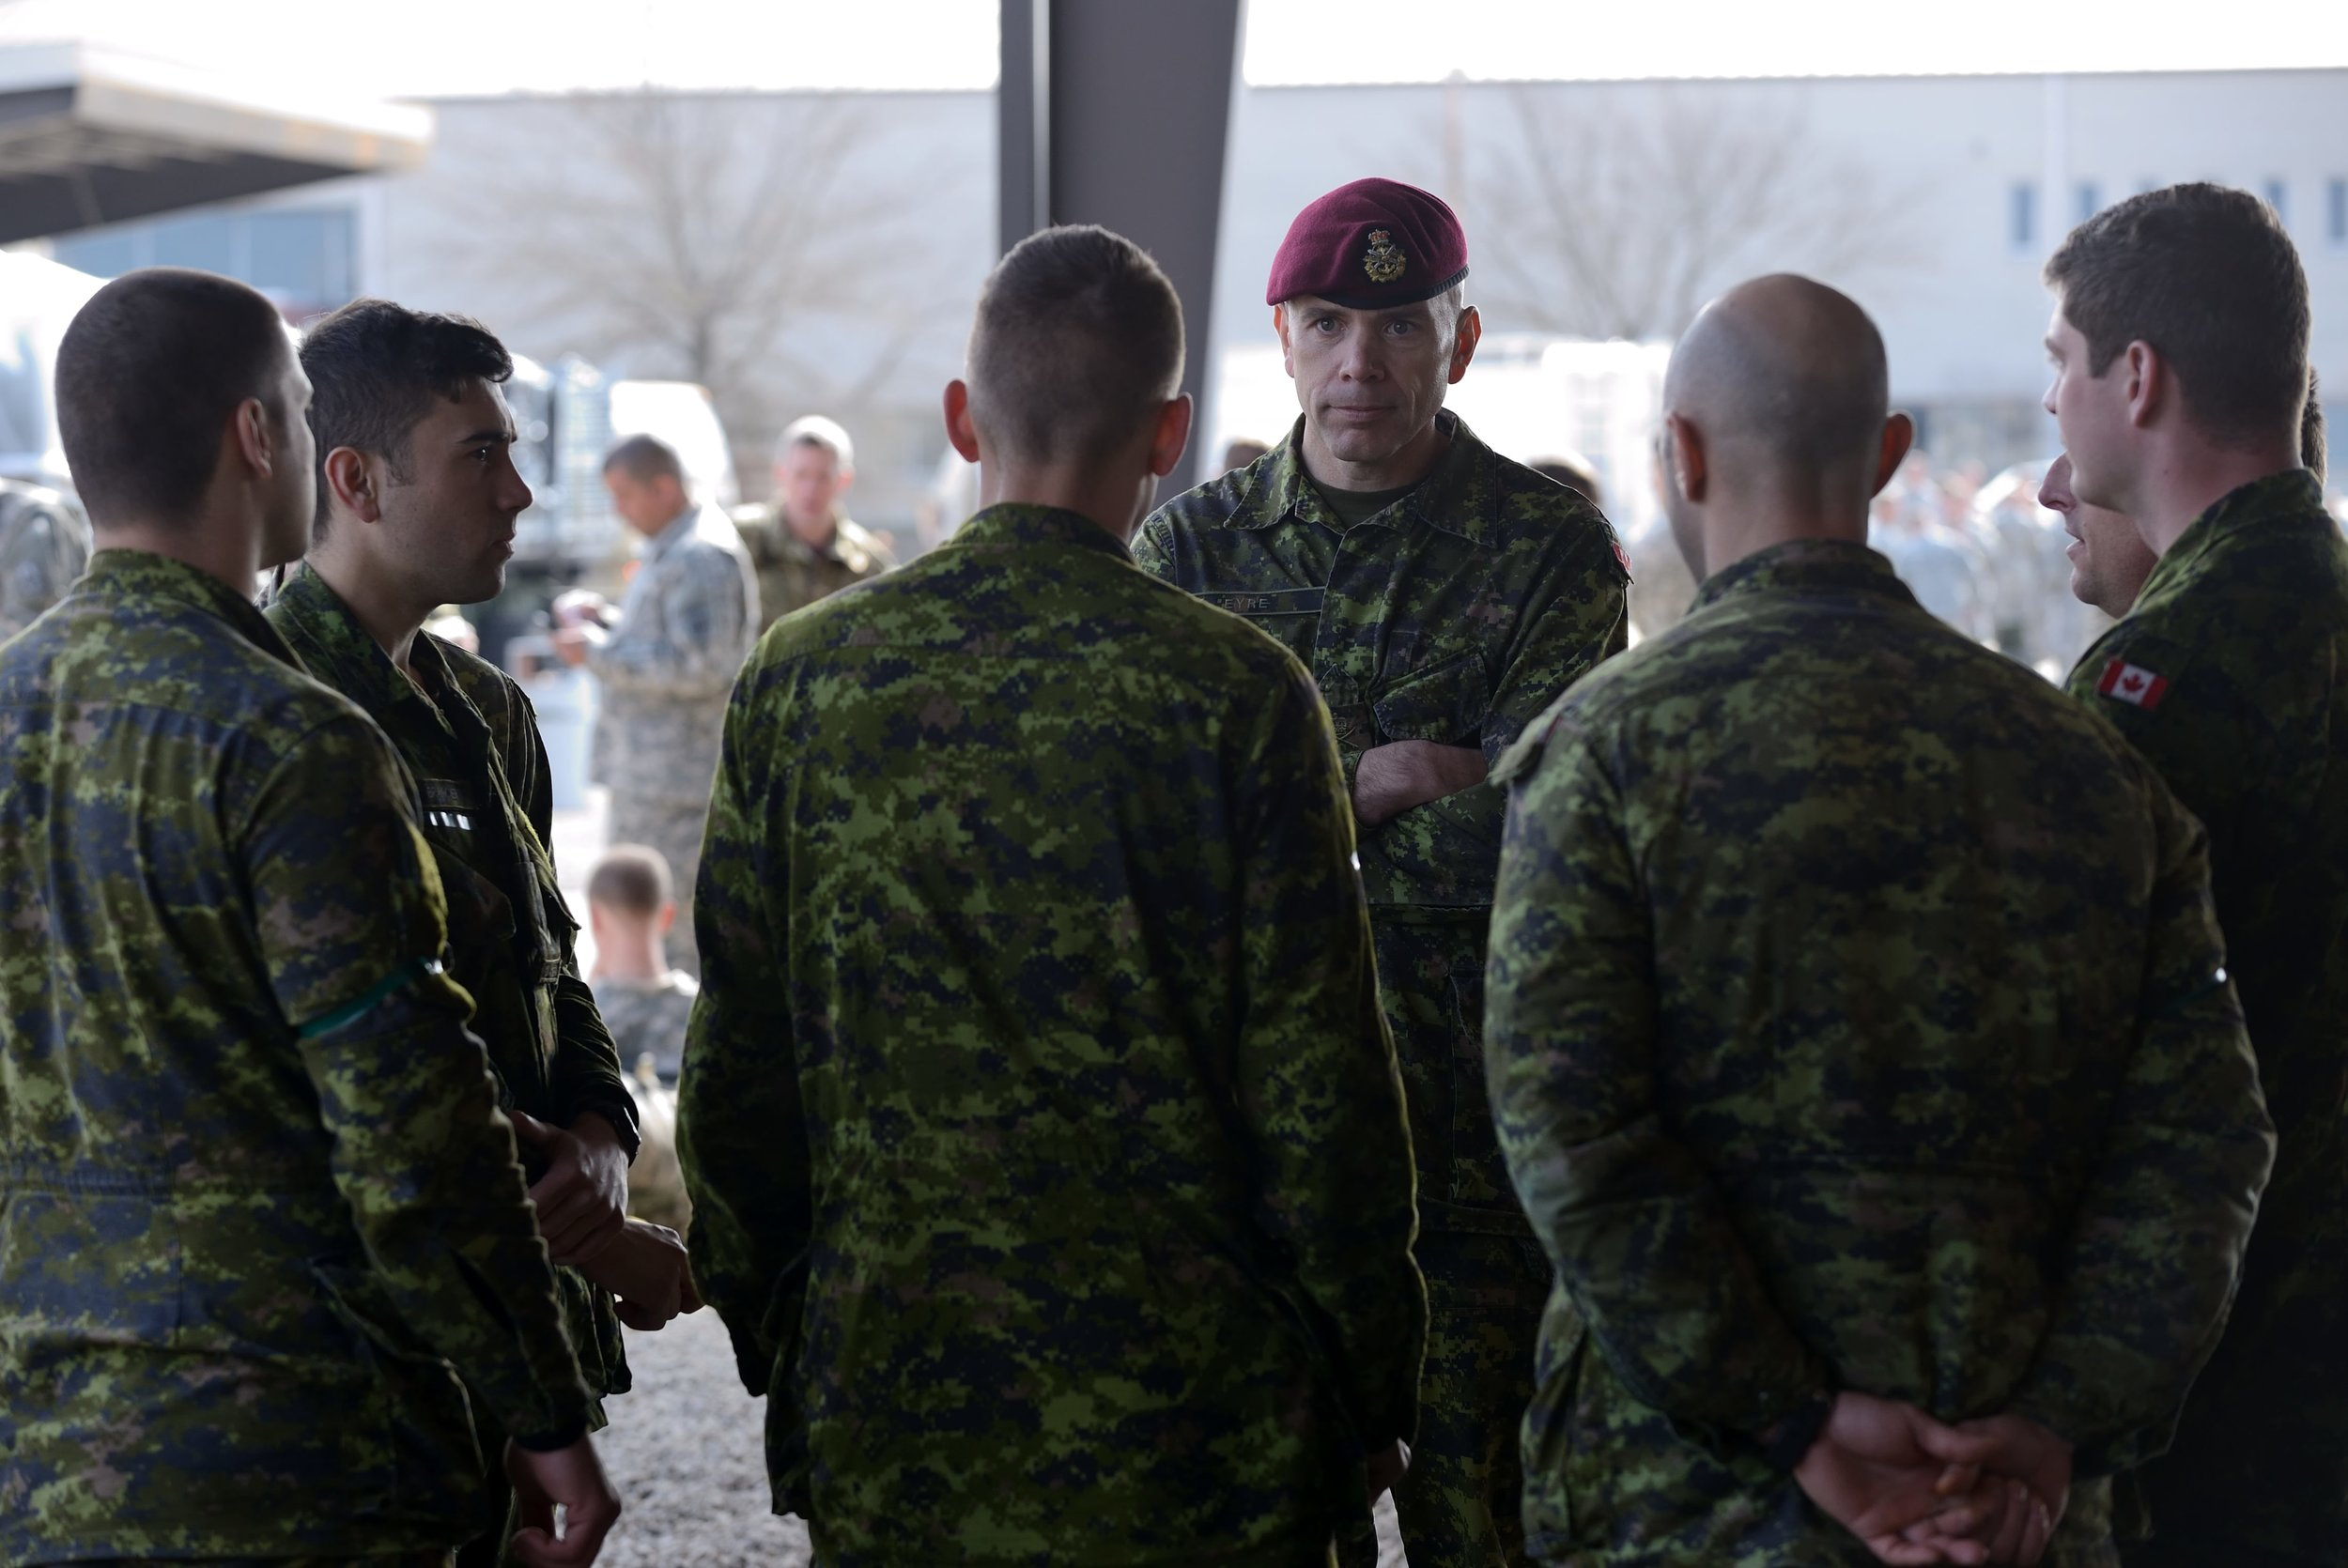 BGen Wayne Eyre speaks to Canadian Armed Forces members as they prepare for the Joint Operational Access Exercise 13 (JOAX 13) held at Fort Bragg, North Carolina. In January 2016, Eyre was promoted to the rank of major-general and appointed Deputy Commander Military Personnel Command (MPC) at NDHQ. The MPC provides functional direction and guidance to the CAF on all matters pertaining to the management of military personnel. (sgt matthew mcgregor, dnd)